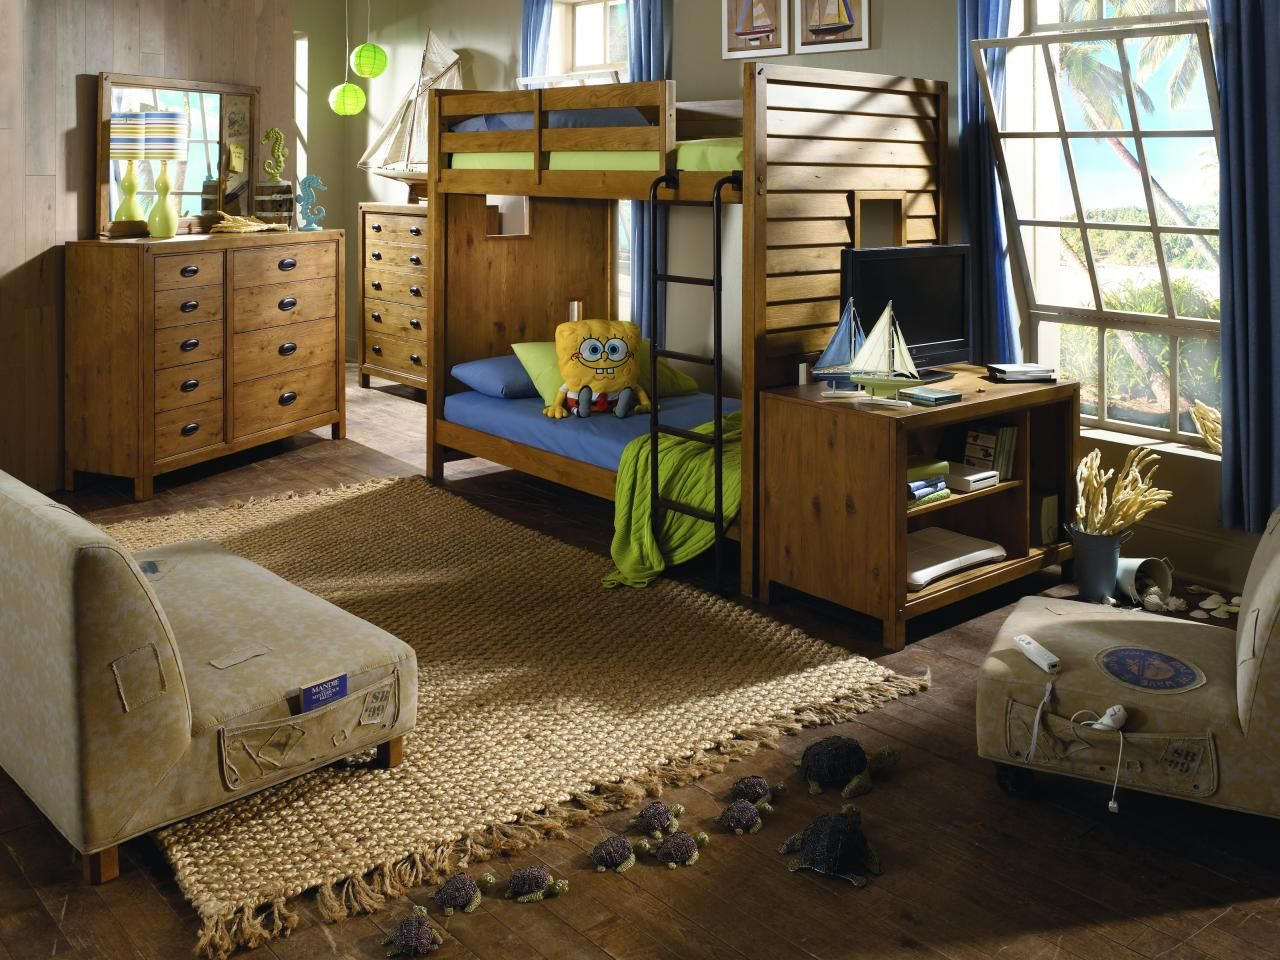 Mini loft bed with slide  Surf Collection  Nickelodeon Rooms  Pinterest  Kids rooms and Room